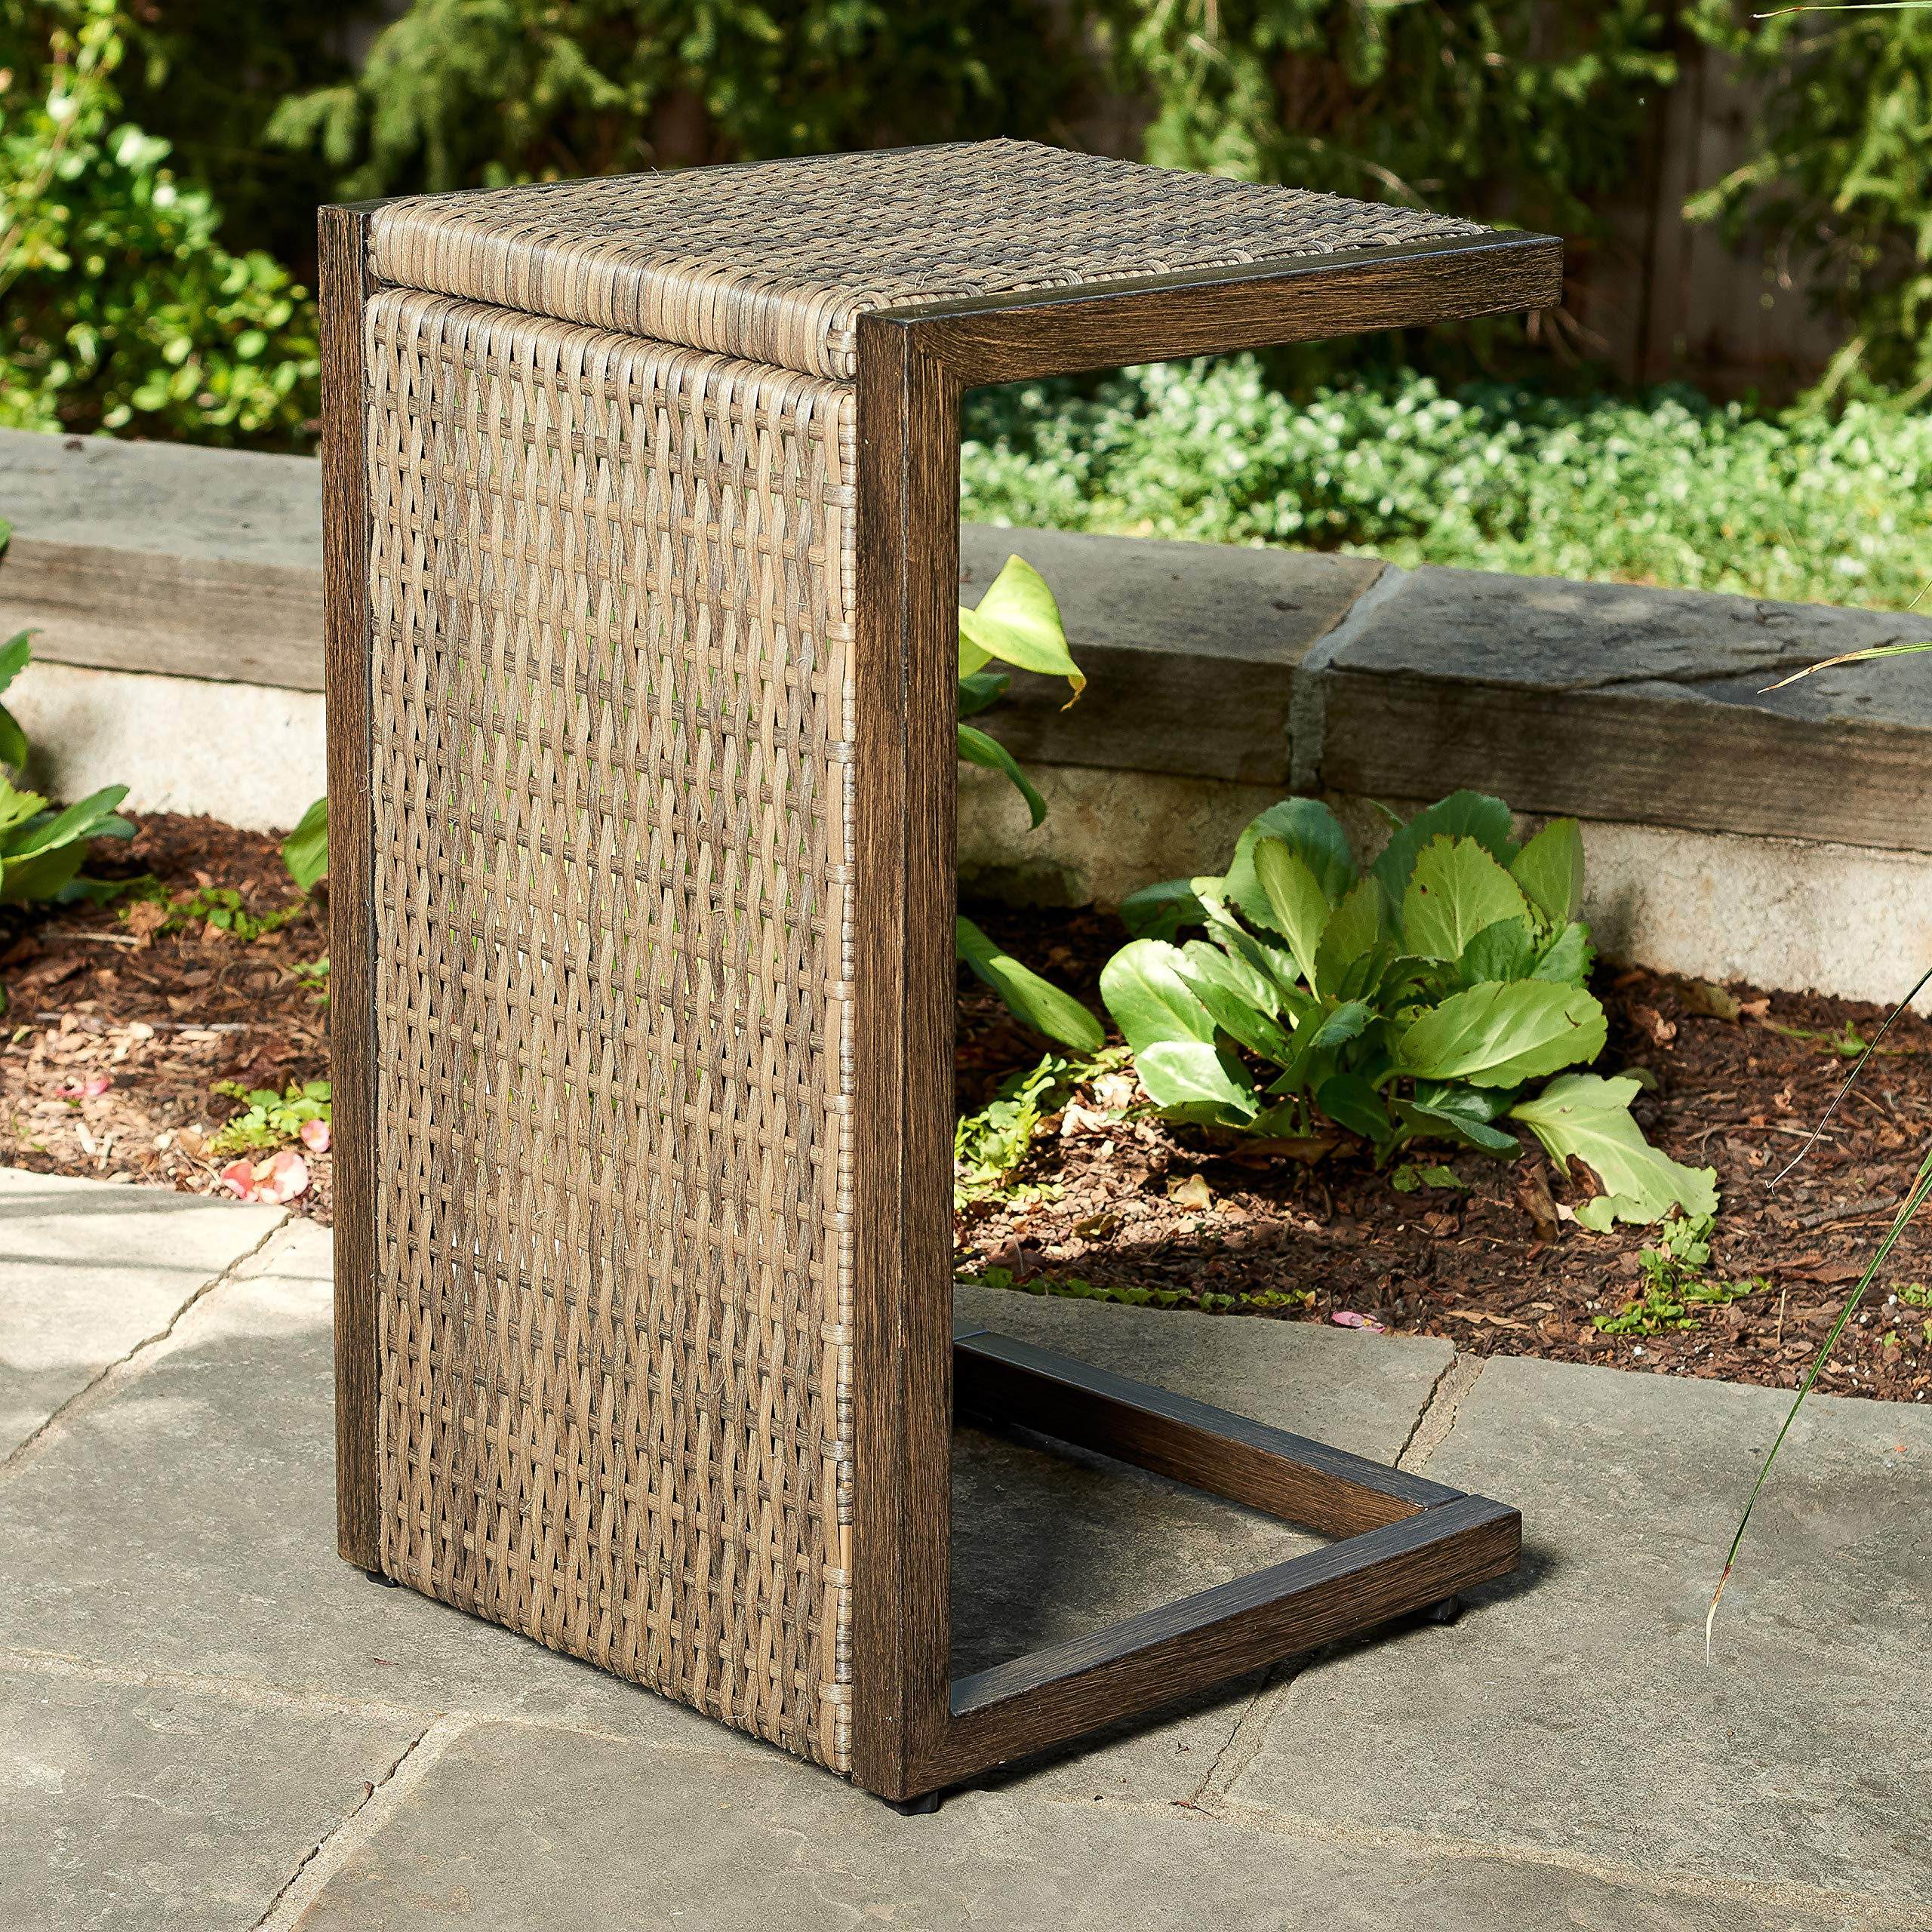 Quality Outdoor Living 65-YZST01 Santa Monica Side Table, Brown Wicker by Quality Outdoor Living